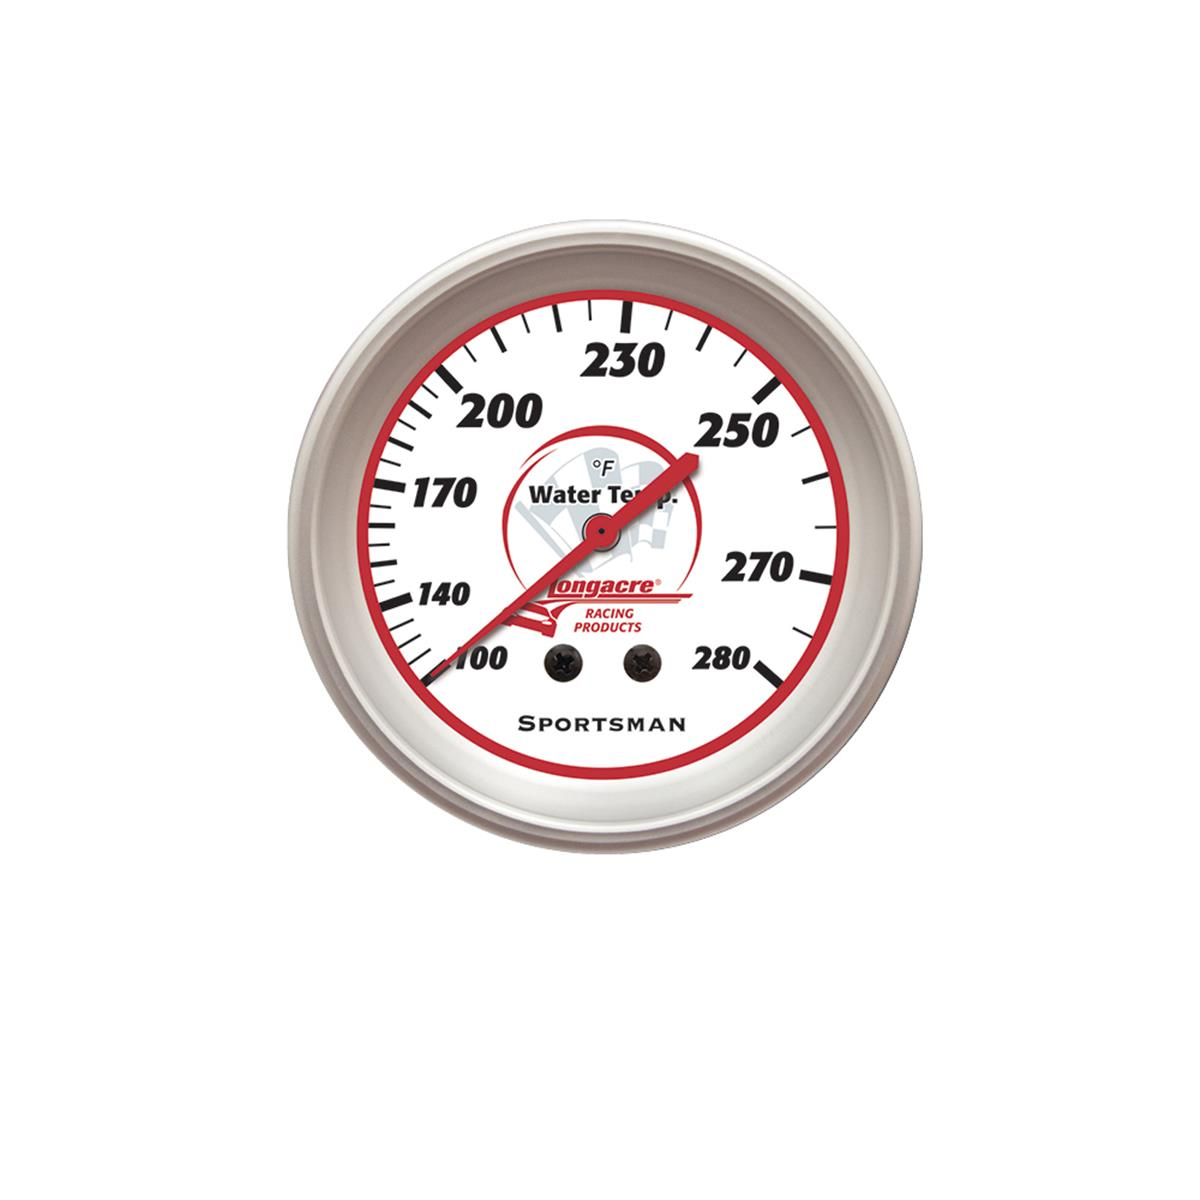 Sportsman™ Gauge Water Temp. 100-280